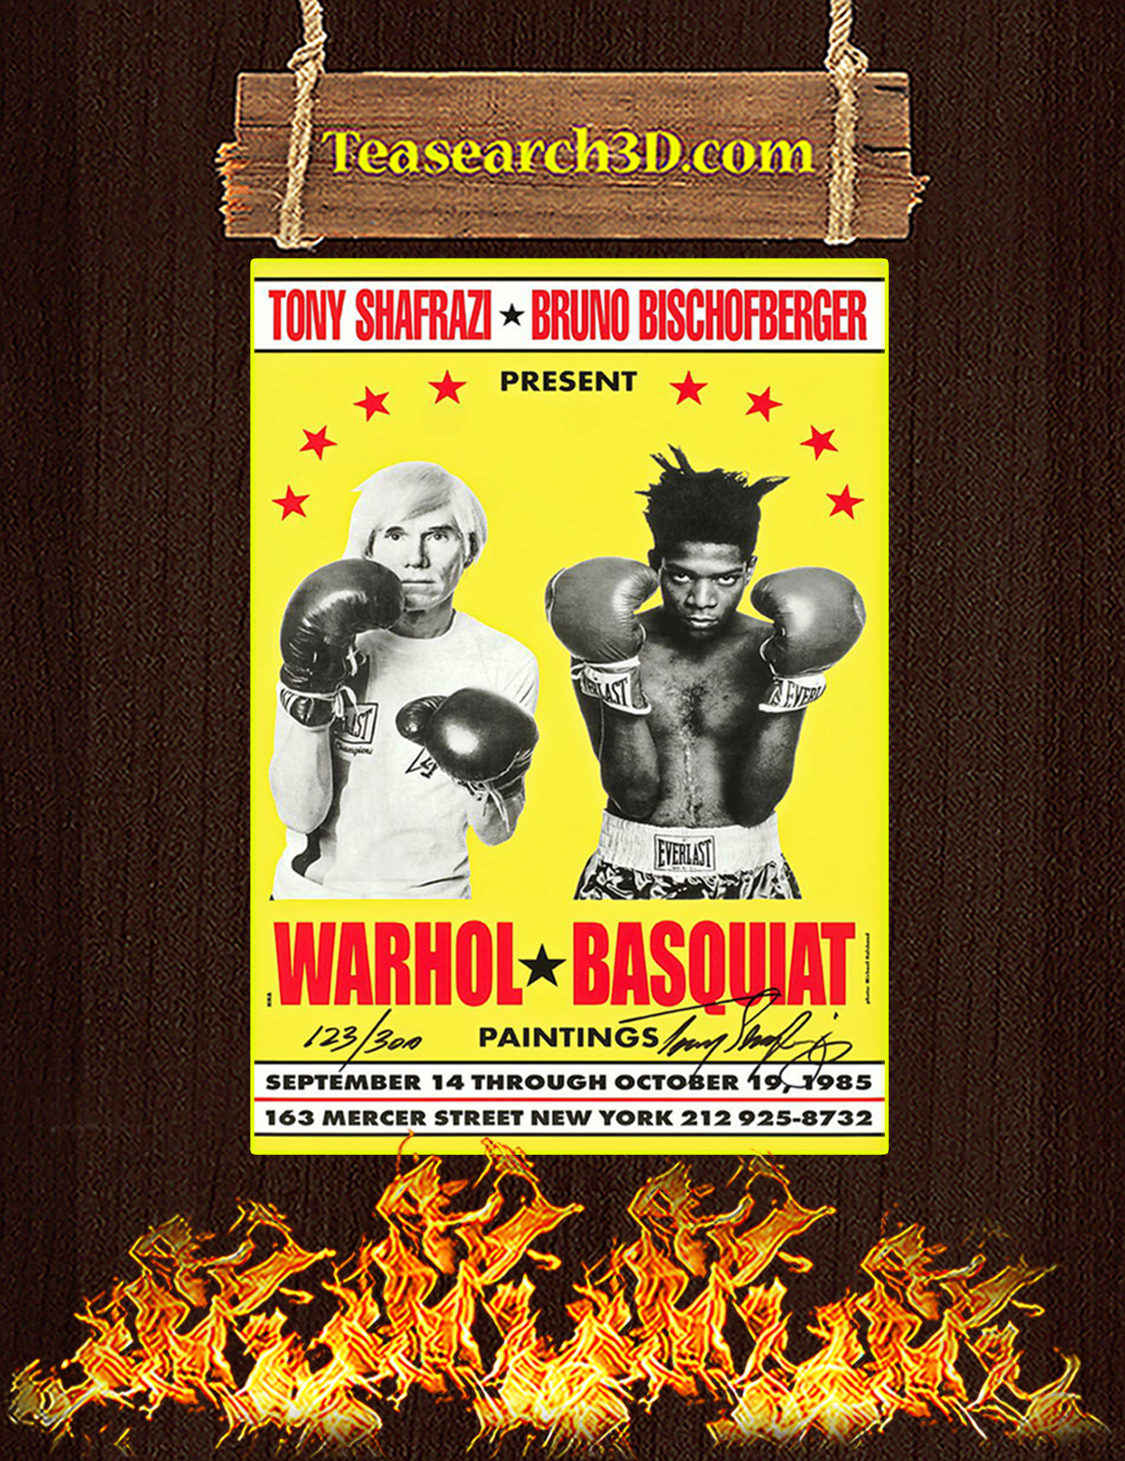 Warhol and Basquiat paintings poster A3